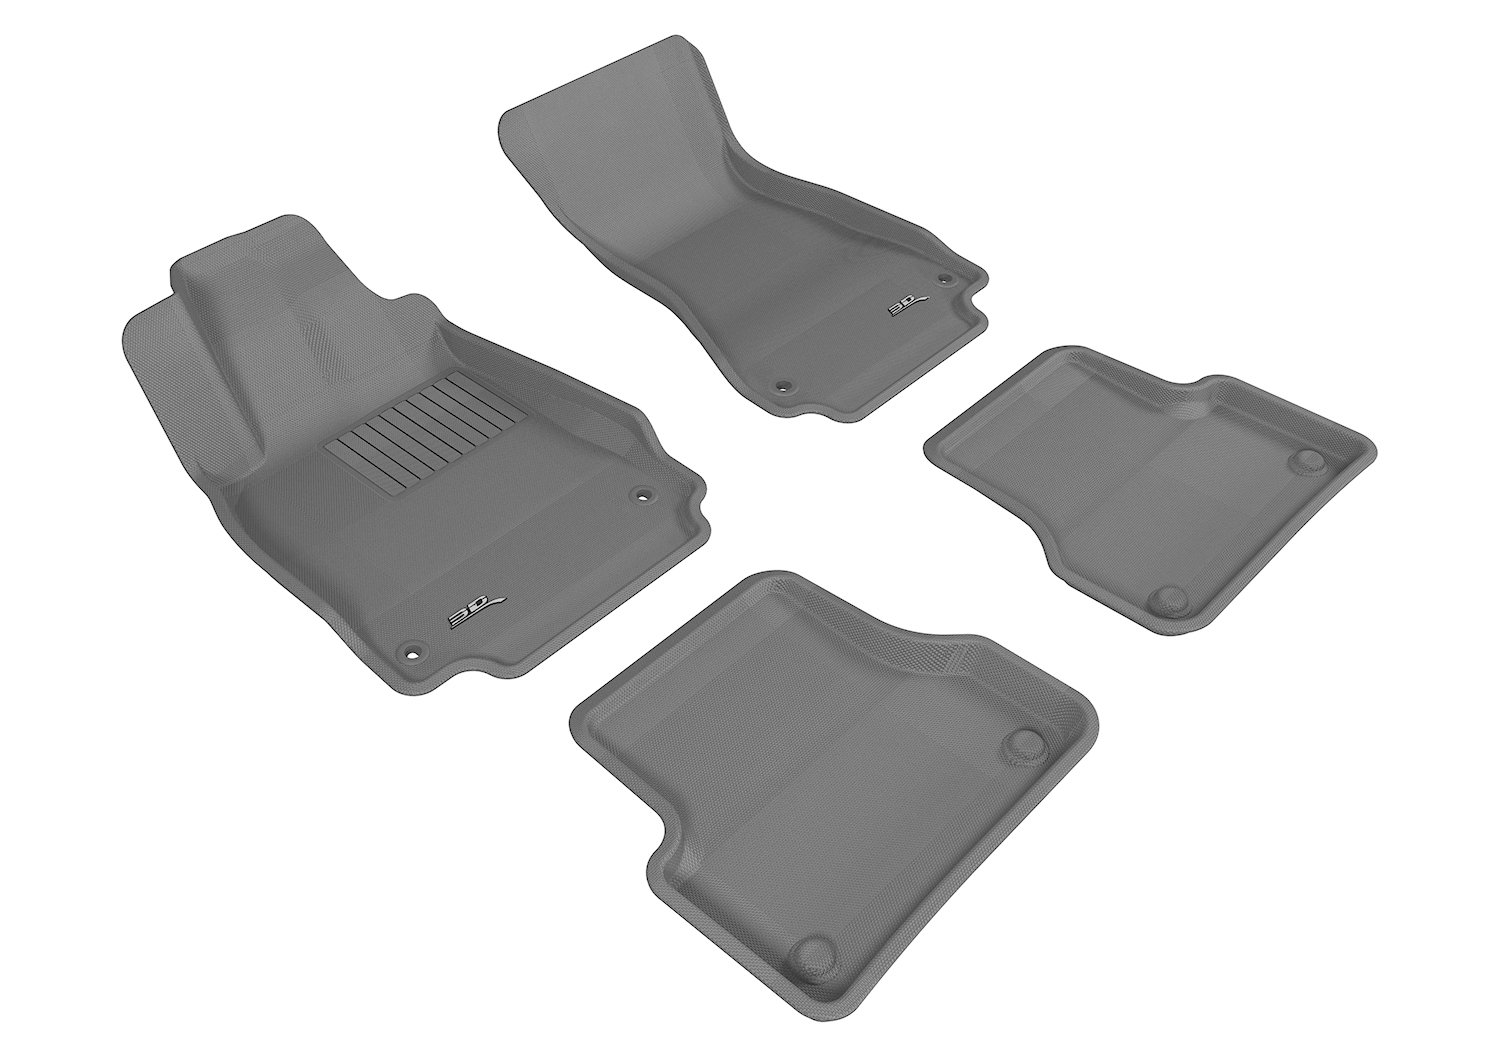 Kagu Rubber 3D MAXpider Second Row Custom Fit All-Weather Floor Mat for Select Audi Models L1AD02221502 Tan